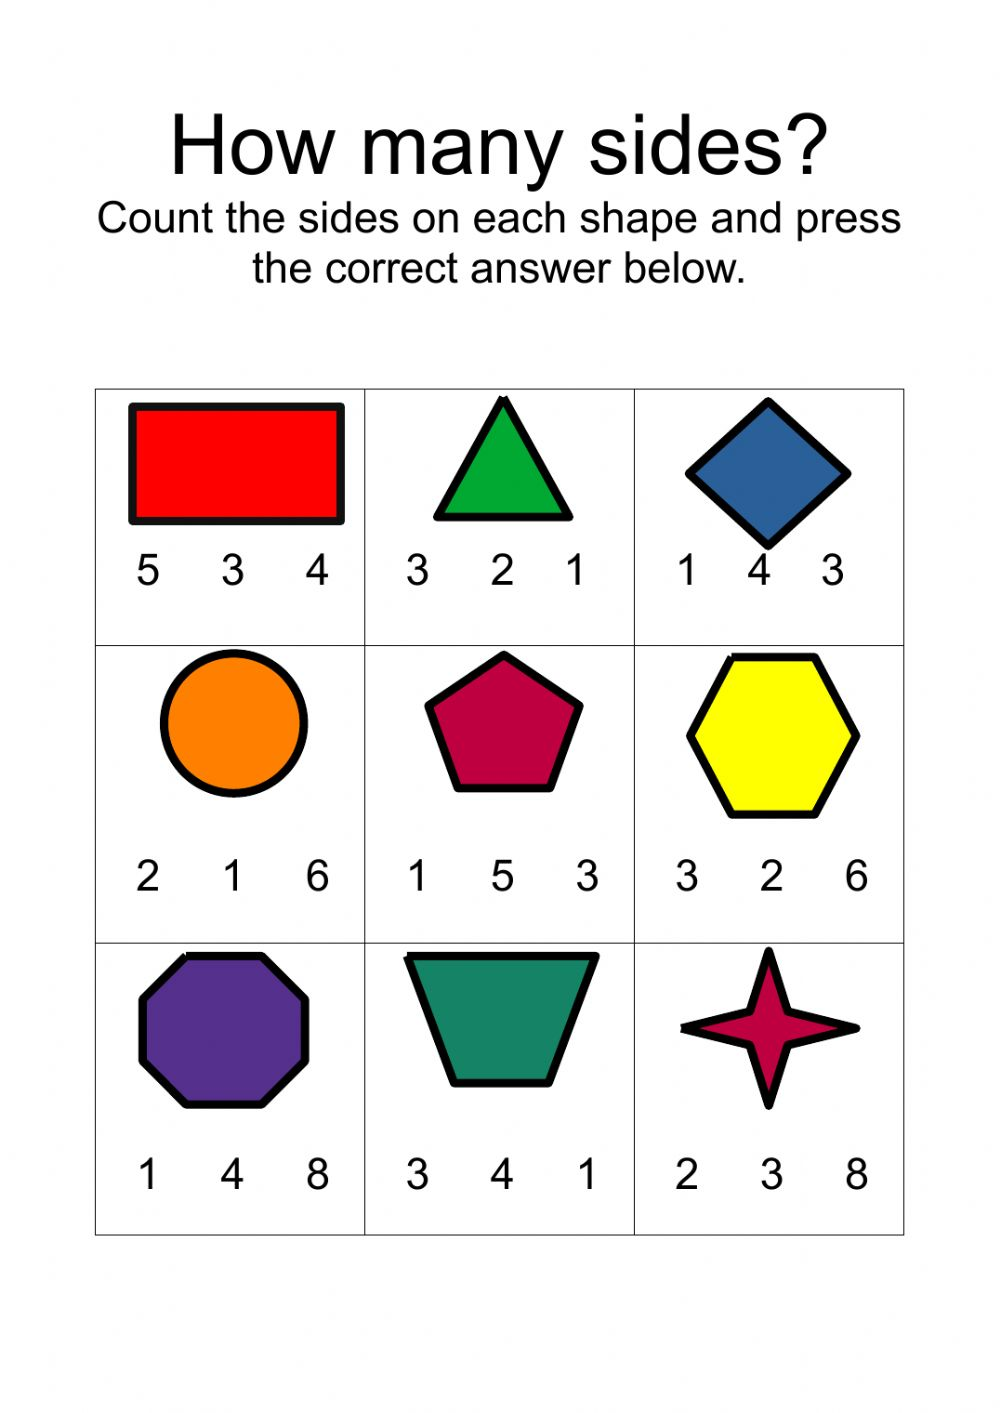 hight resolution of Counting Sides on Shapes worksheet